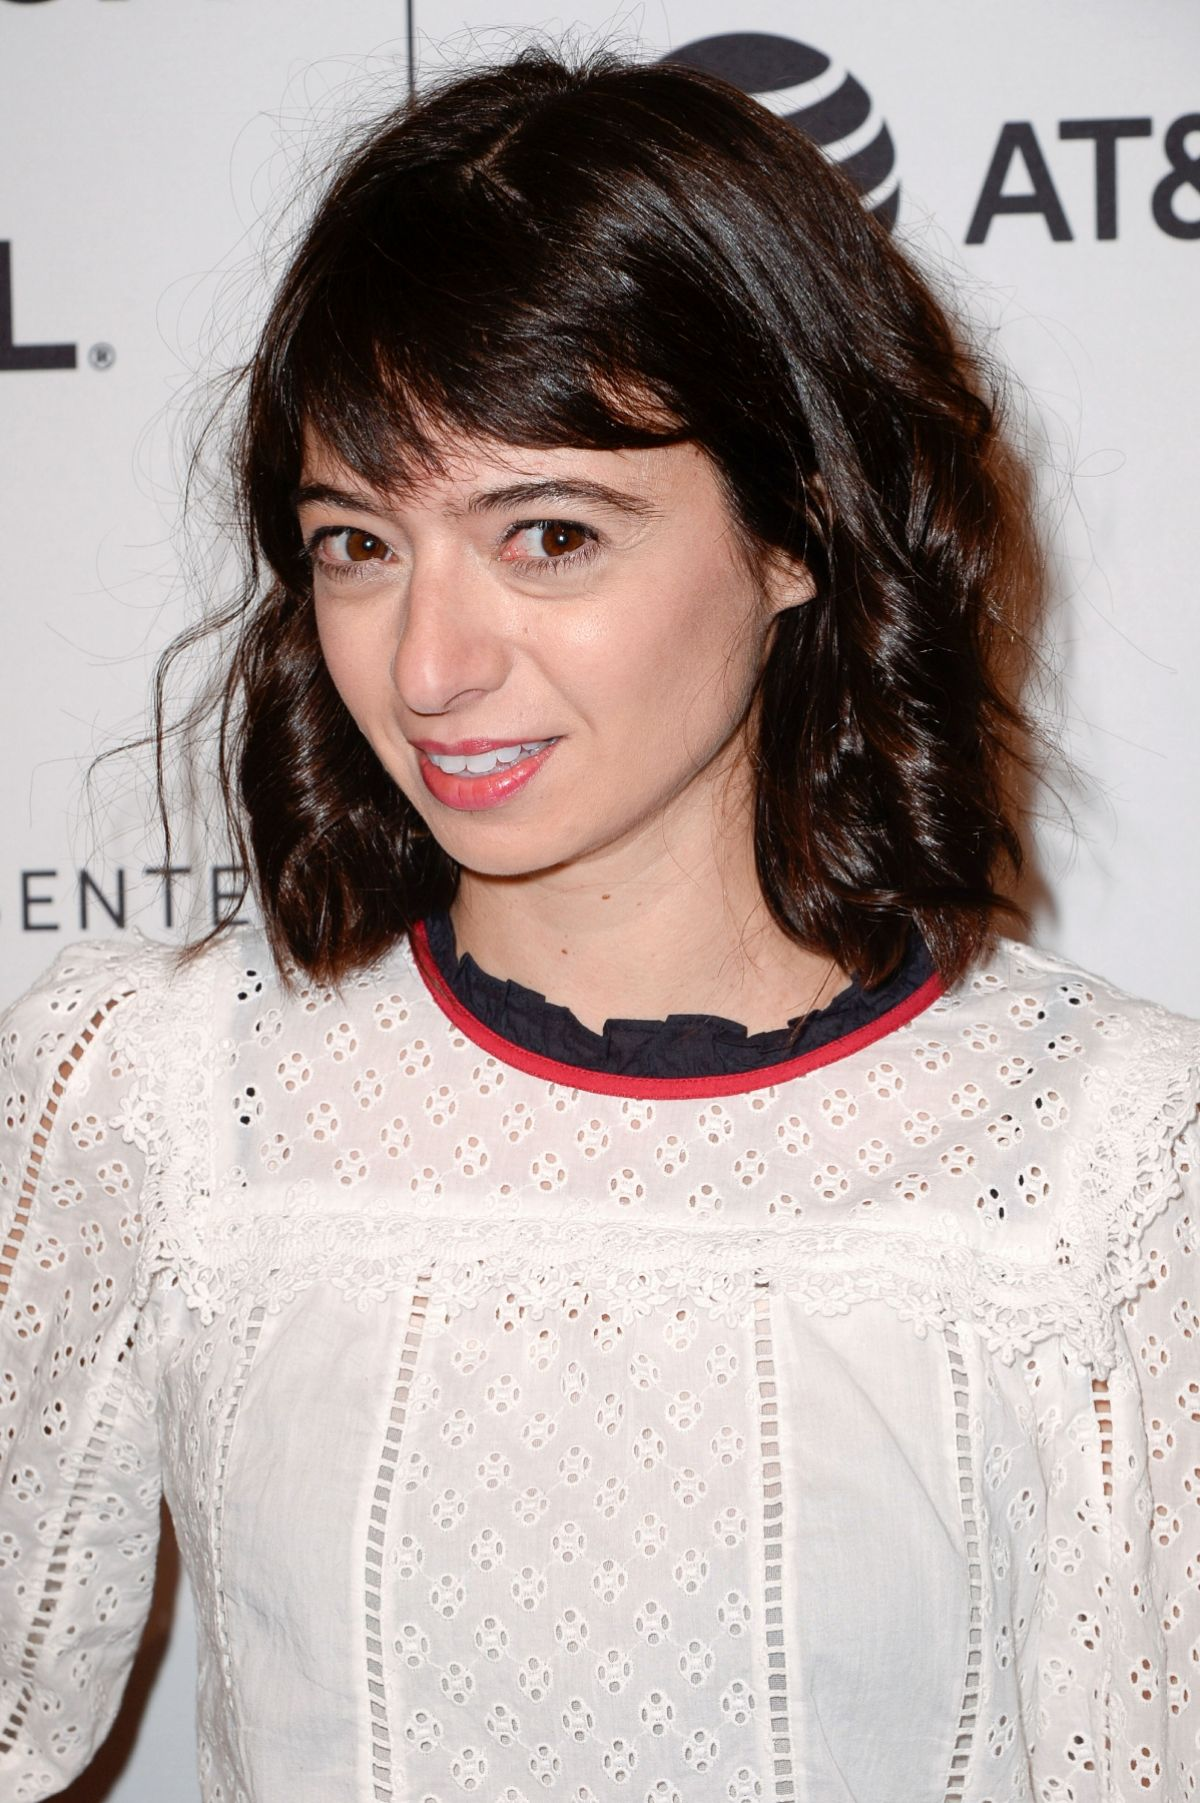 Communication on this topic: Sibyl Buck, kate-micucci/